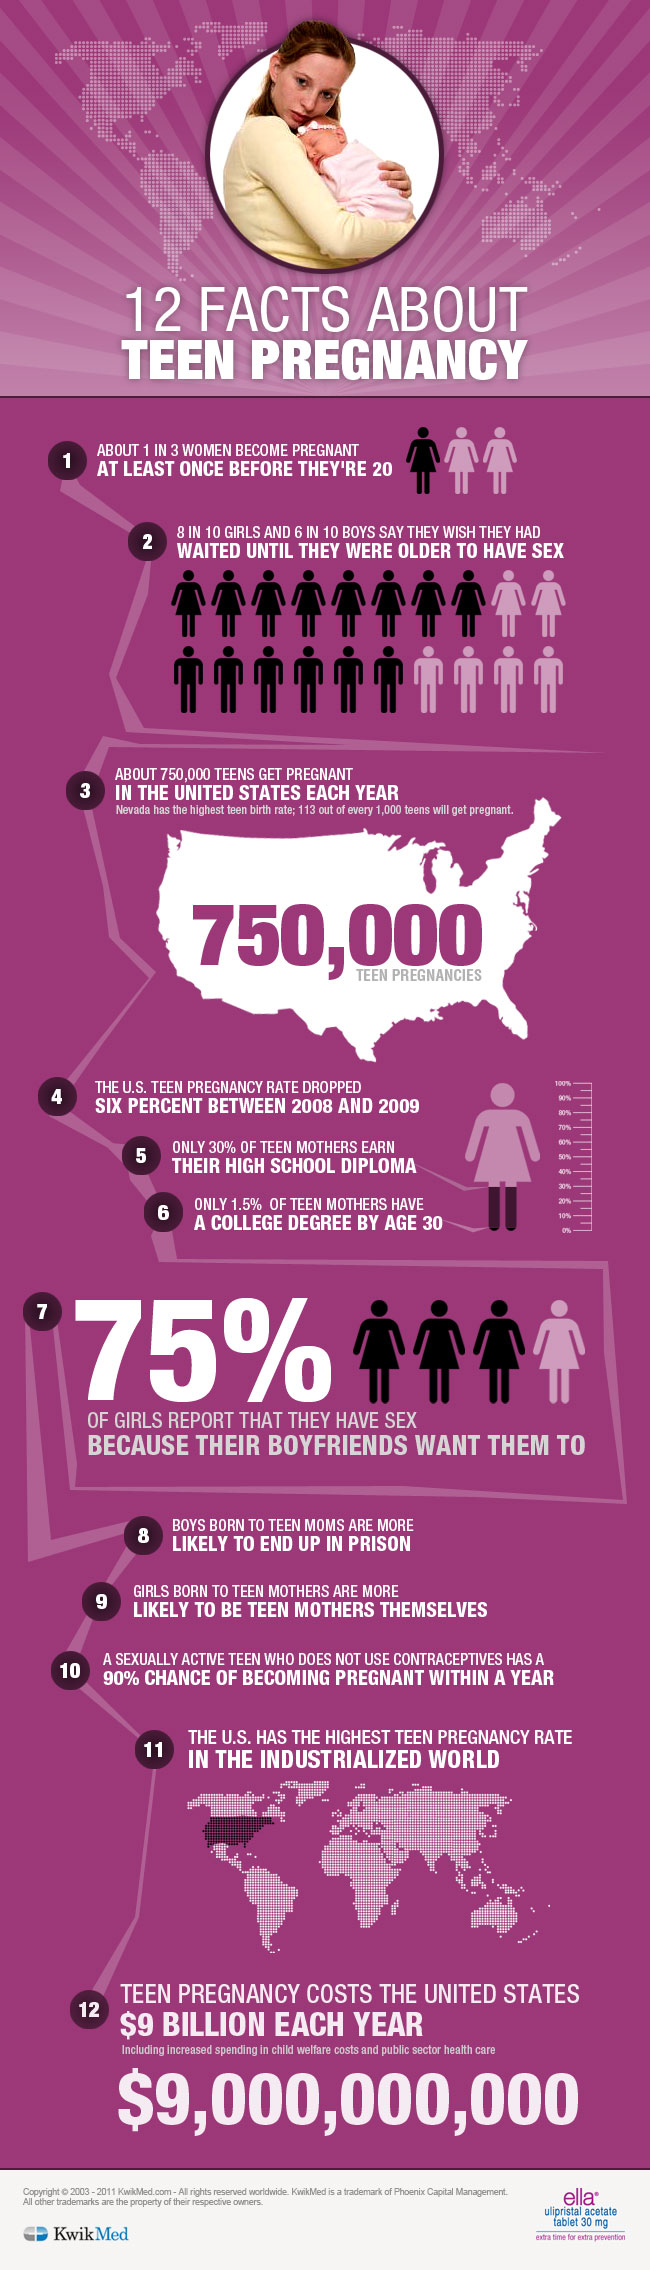 12 Facts About Teen Pregnancy